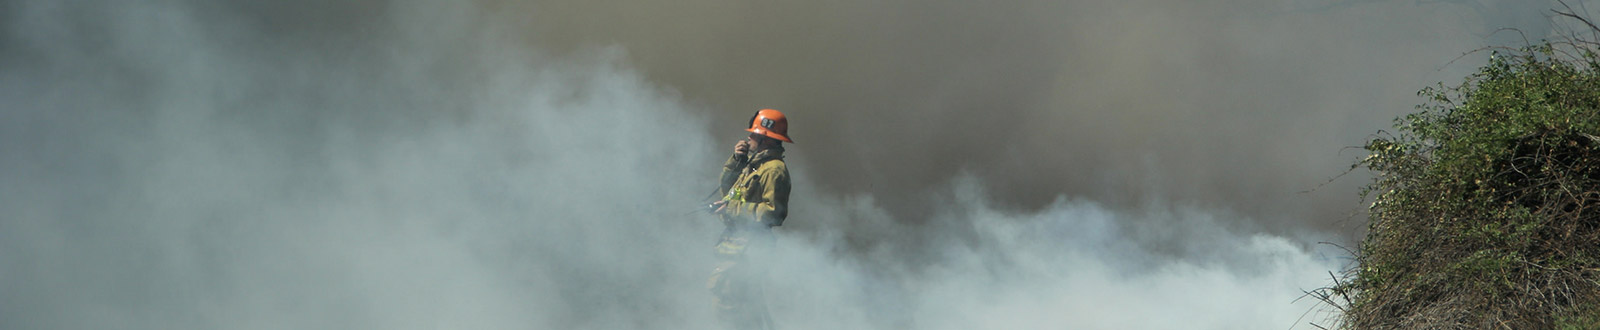 Firefighter standing in smoke